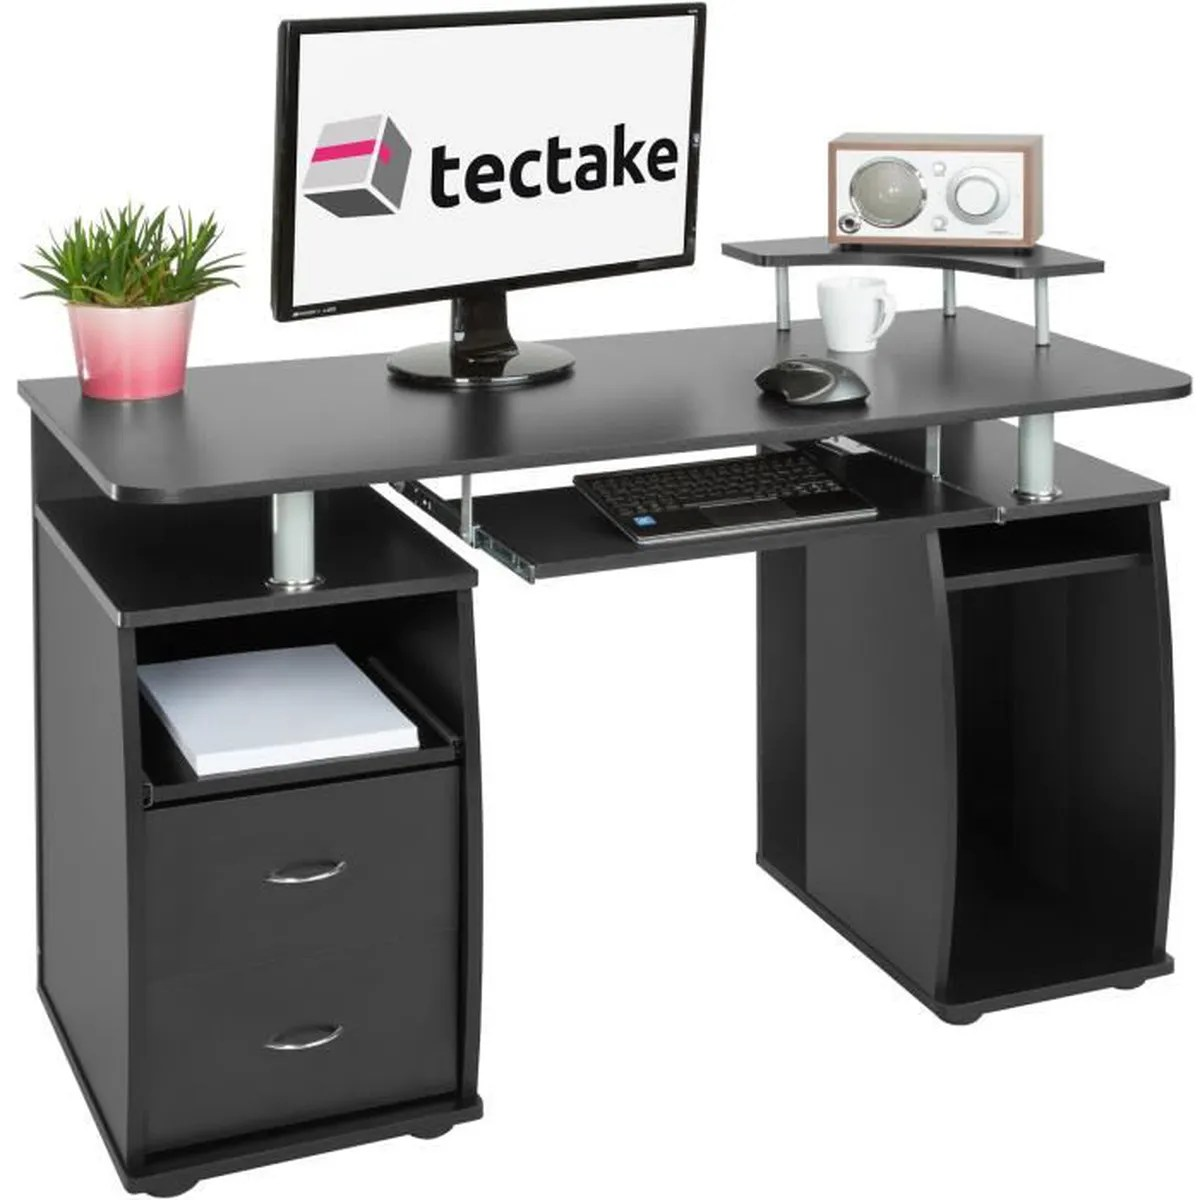 Bureau Informatique Design Tectake Bureau Design Informatique Pour Ordinateur 115 Cm X 55 Cm